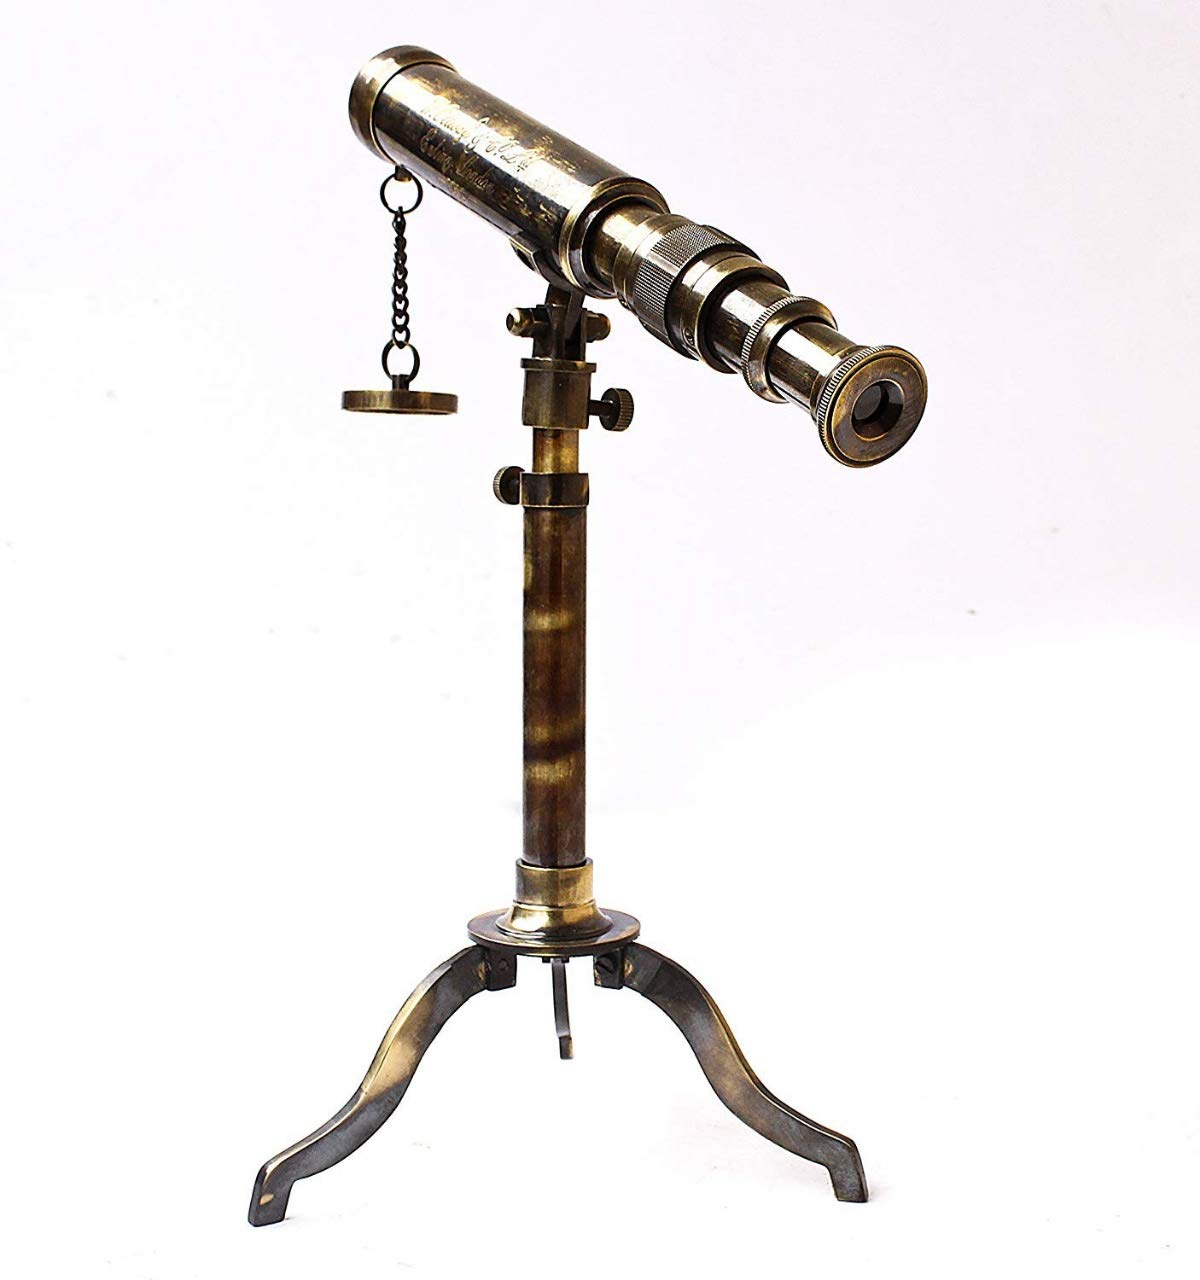 Antique Museum W. Ottway & Co. London Vintage Maritime Nautical 1915 Antique Brass Collectible Tripod Telescope with Hardwooden Box AMTC 035